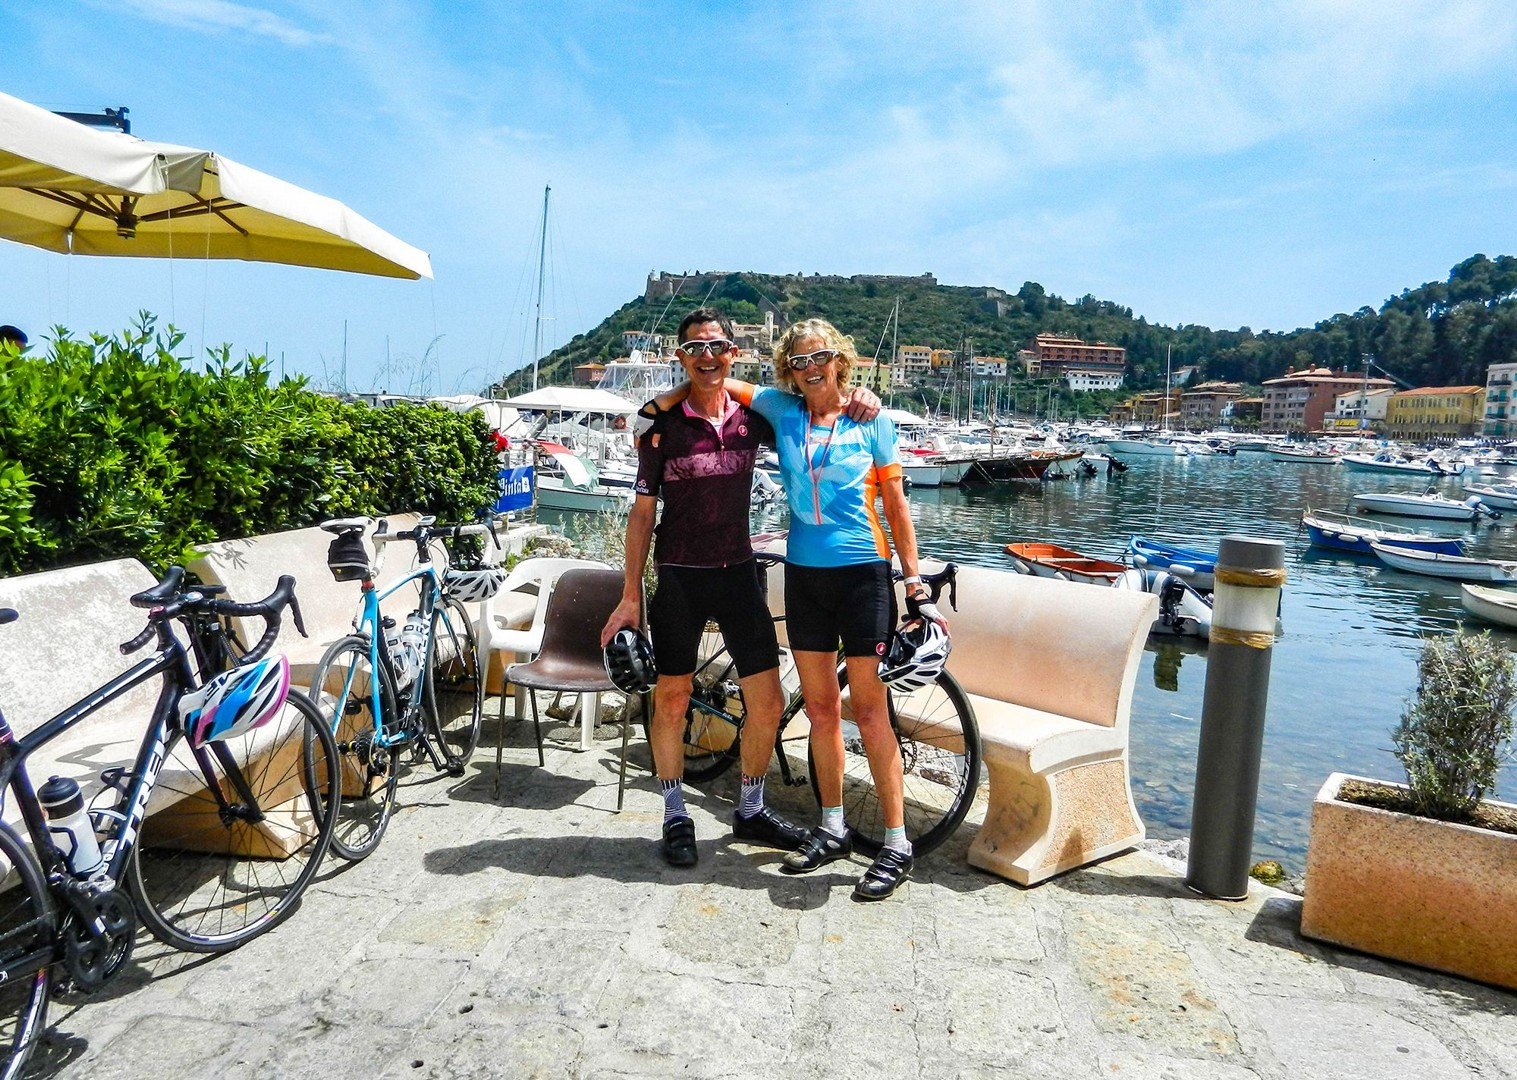 road-saddle-skedaddle-holiday-guided-italy-italian-cycling.jpg - NEW! Italy - Coast to Coast - L'Adriatico al Tirreno - Road Cycling